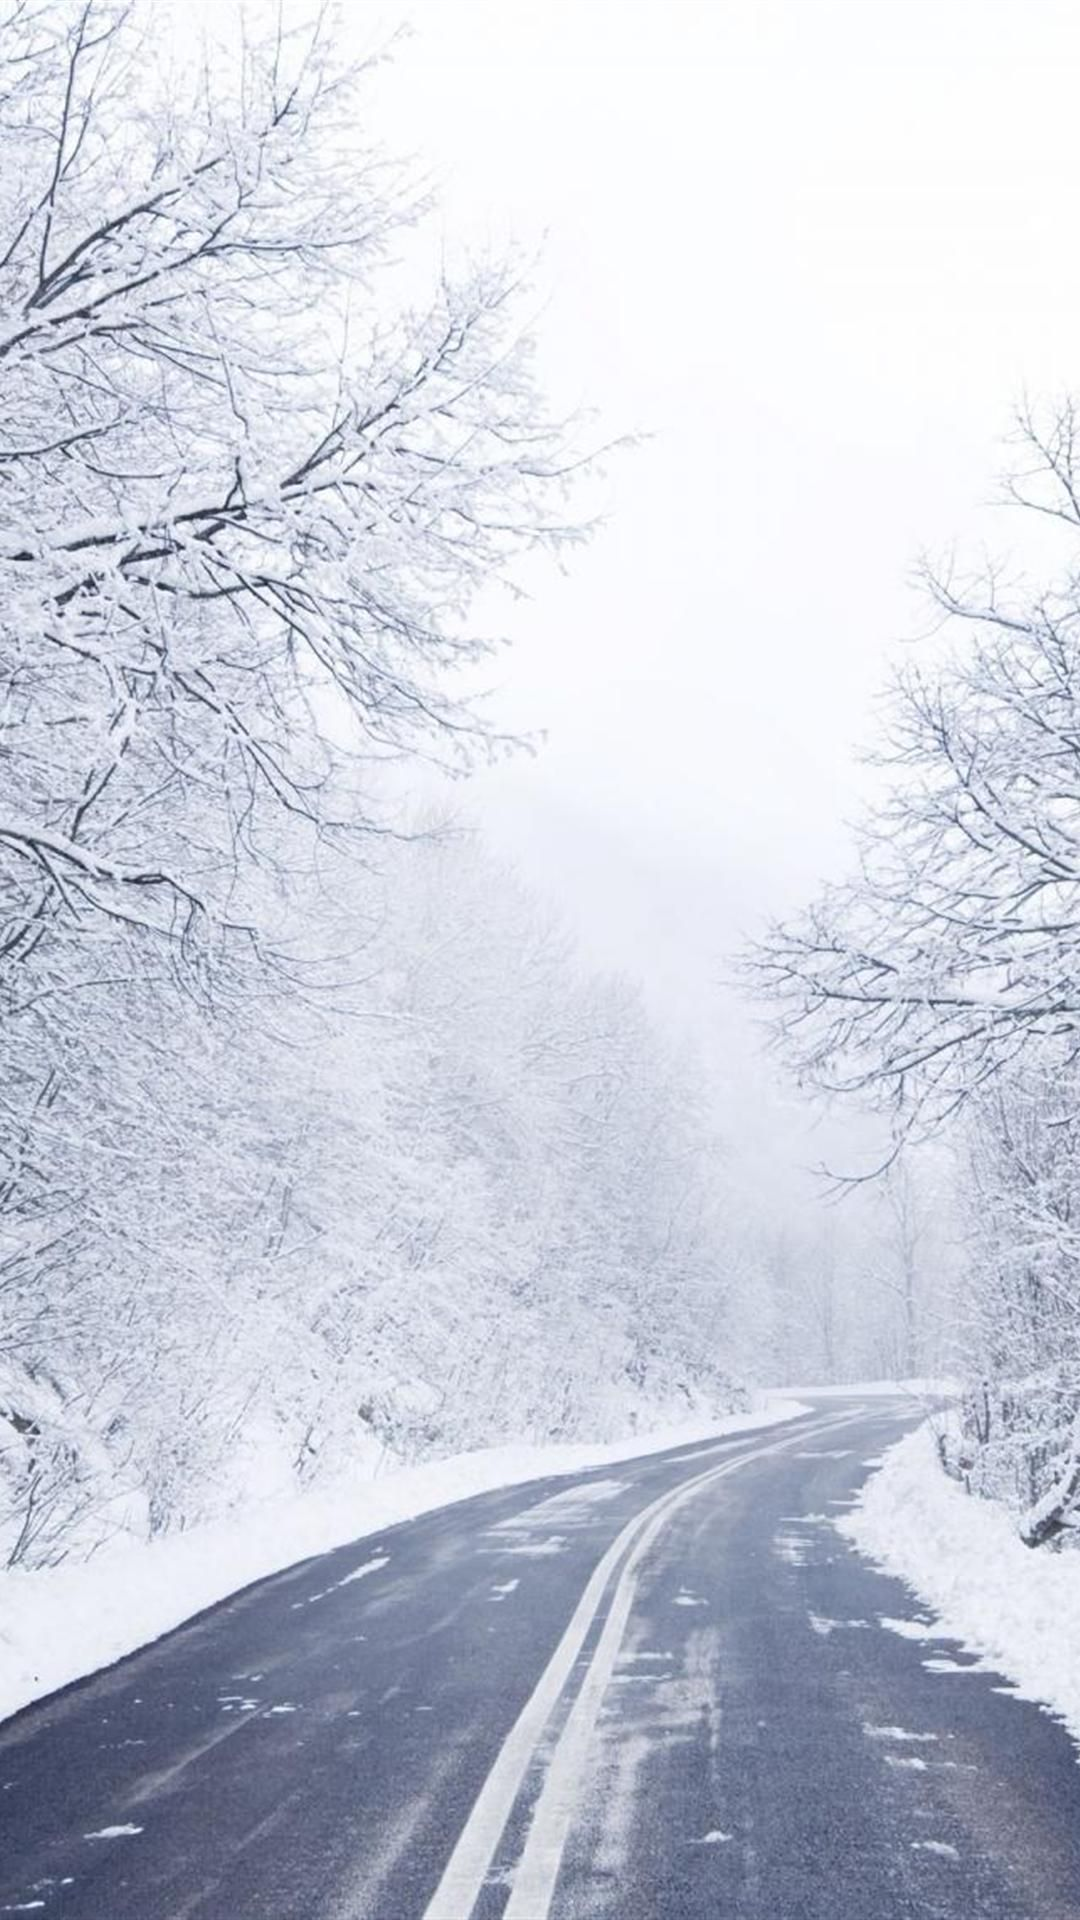 Cold Winter Road Iphone 6 Plus Wallpapers Iphone Wallpaper Winter Snow Wallpaper Iphone Winter Wallpaper